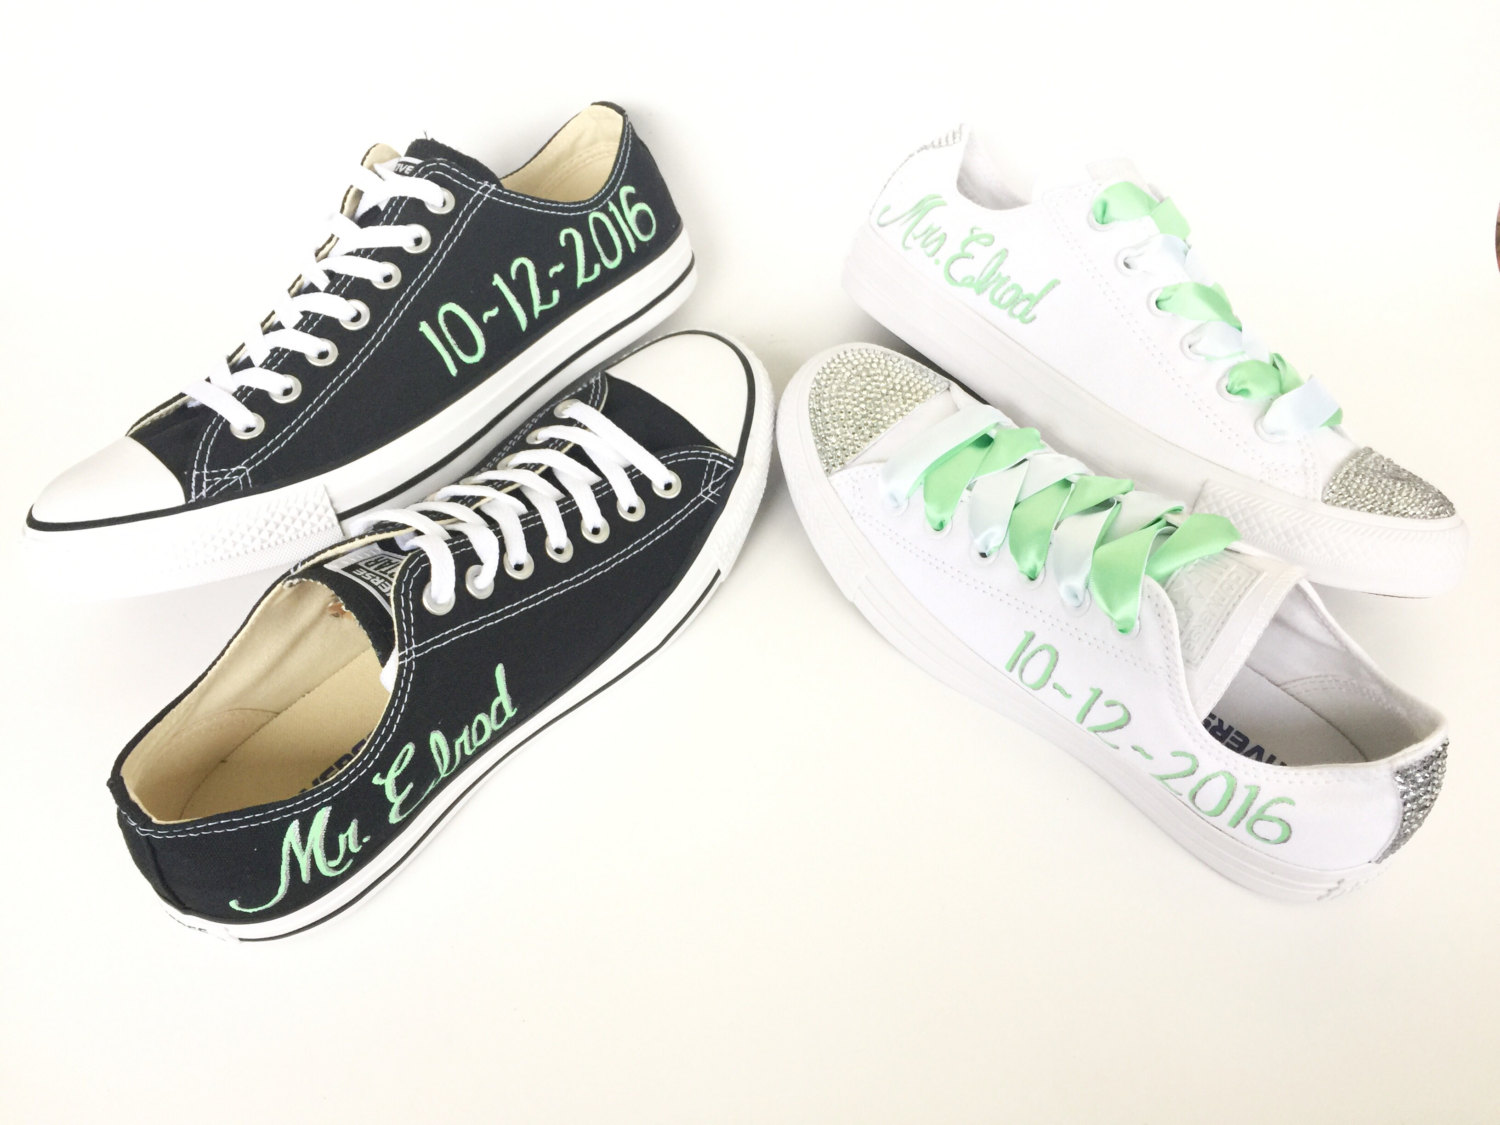 1ec8dde416 LLC amp; Design Sposo Sposa Custom Intellexual Converse ...